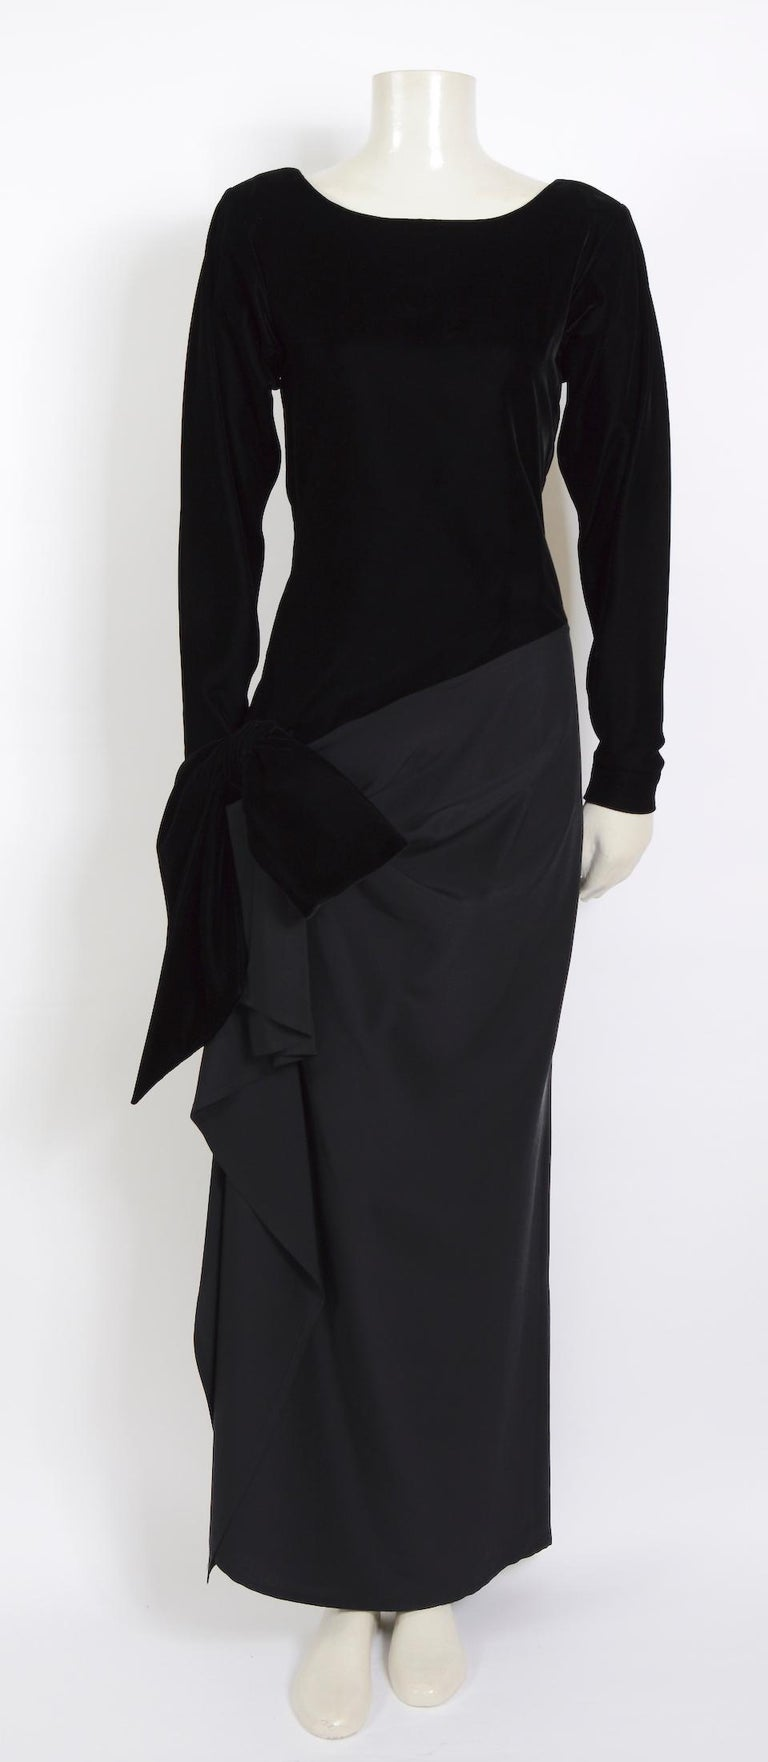 An amazing and rare vintage women's long sleeve velvet and silk evening dress from the 80s by Yves Saint Laurent for the iconic